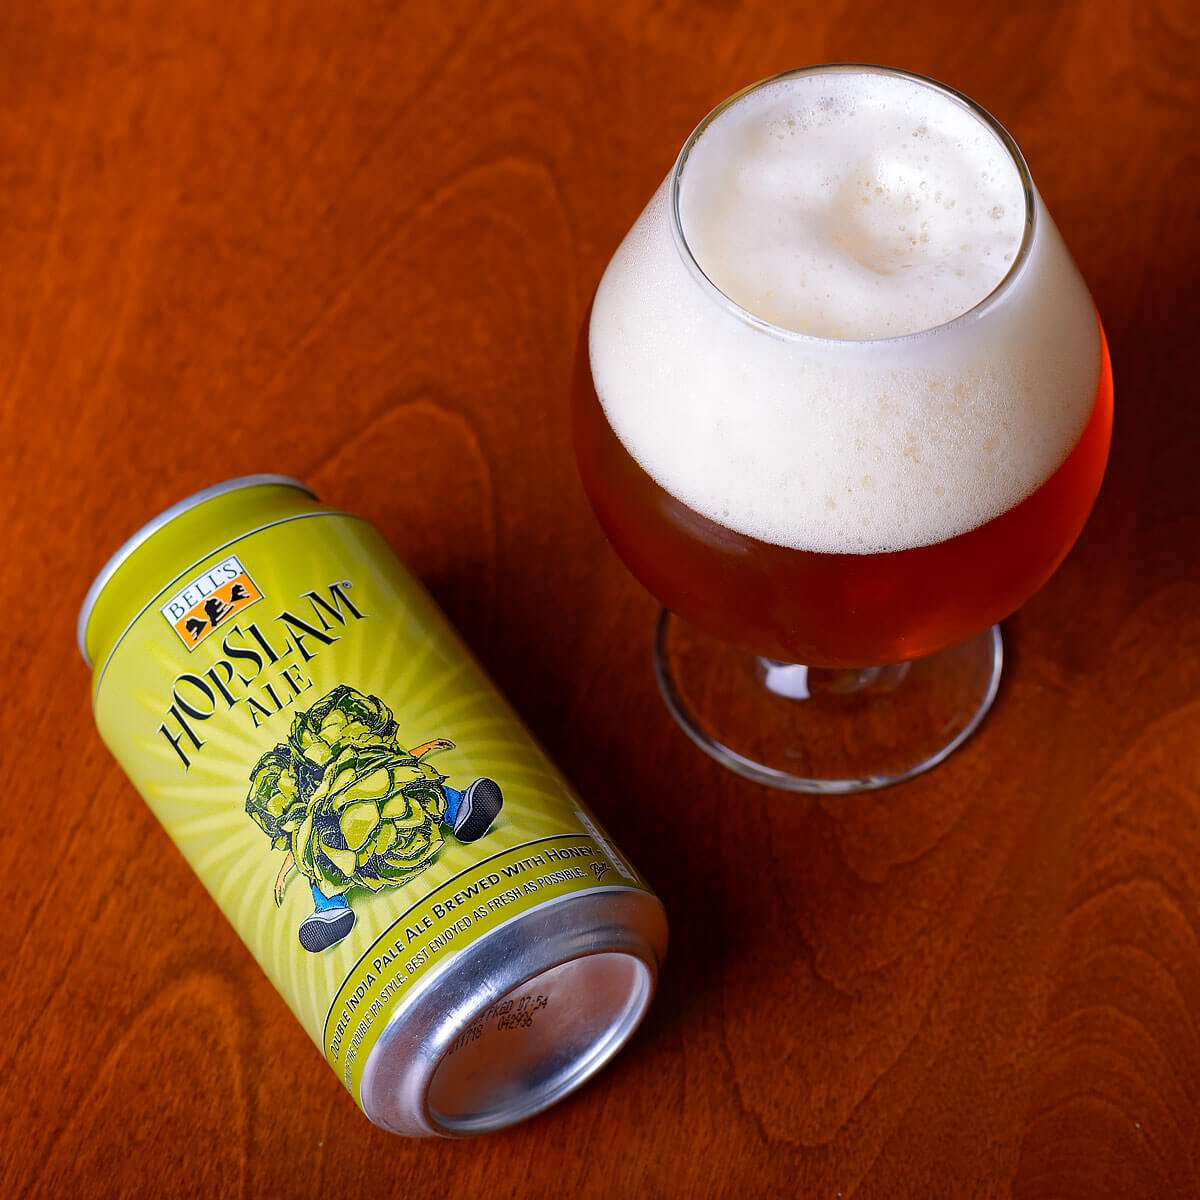 Hopslam Ale, an American Double IPA by Bell's Brewery, Inc.